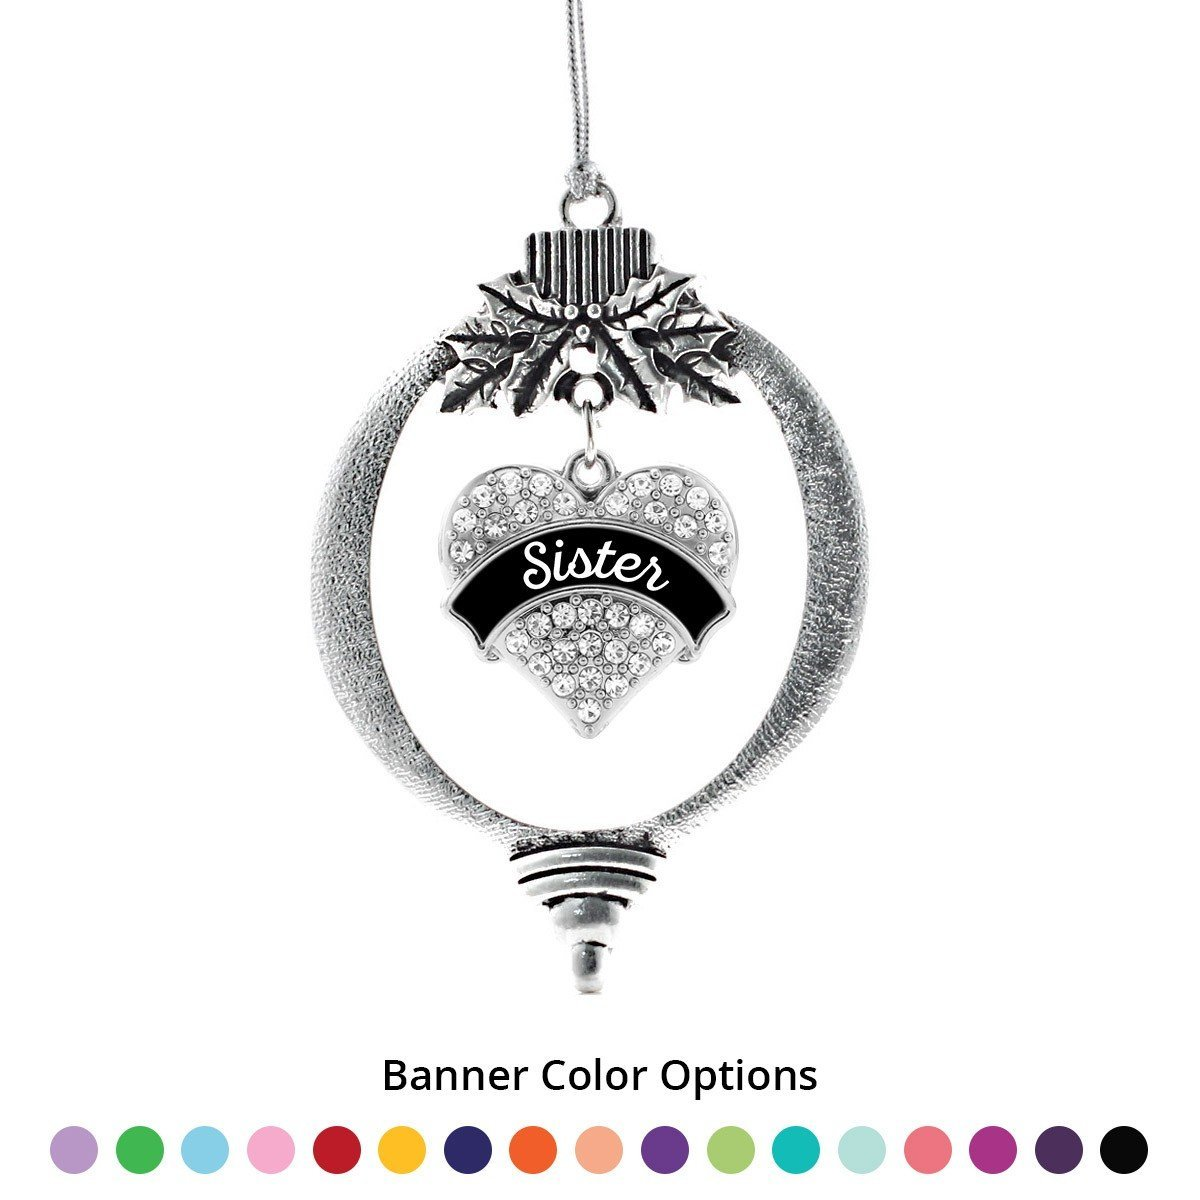 Primary image for Inspired Silver Sister Pave Heart Holiday Ornament- Select Your Banner!